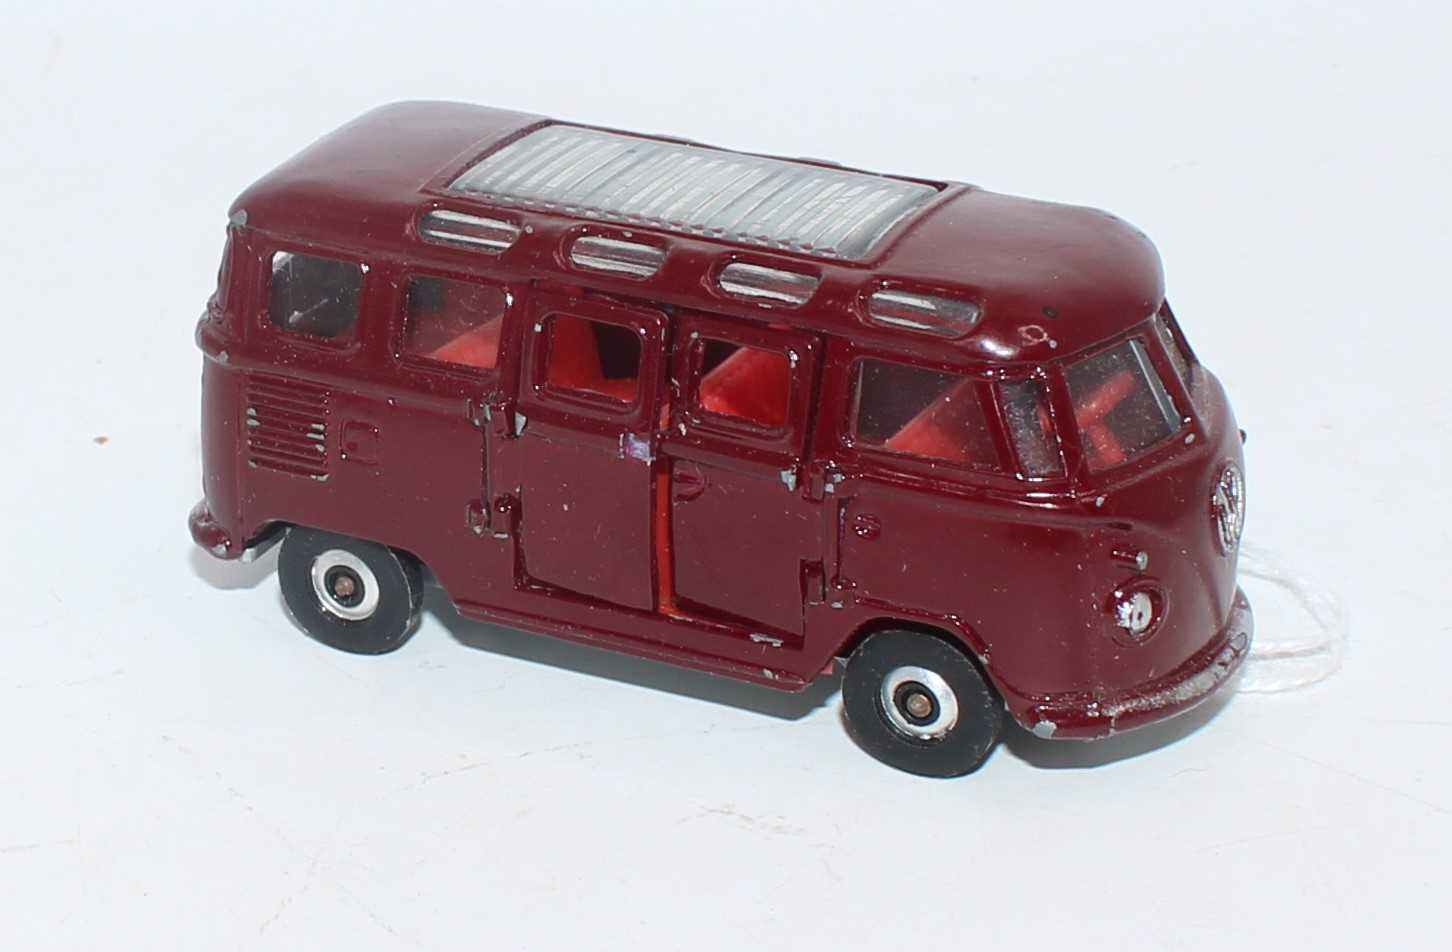 A Lonestar Road-Supercars series 1/59 scale model of a VW Microbus, finished in maroon with silver - Image 2 of 2